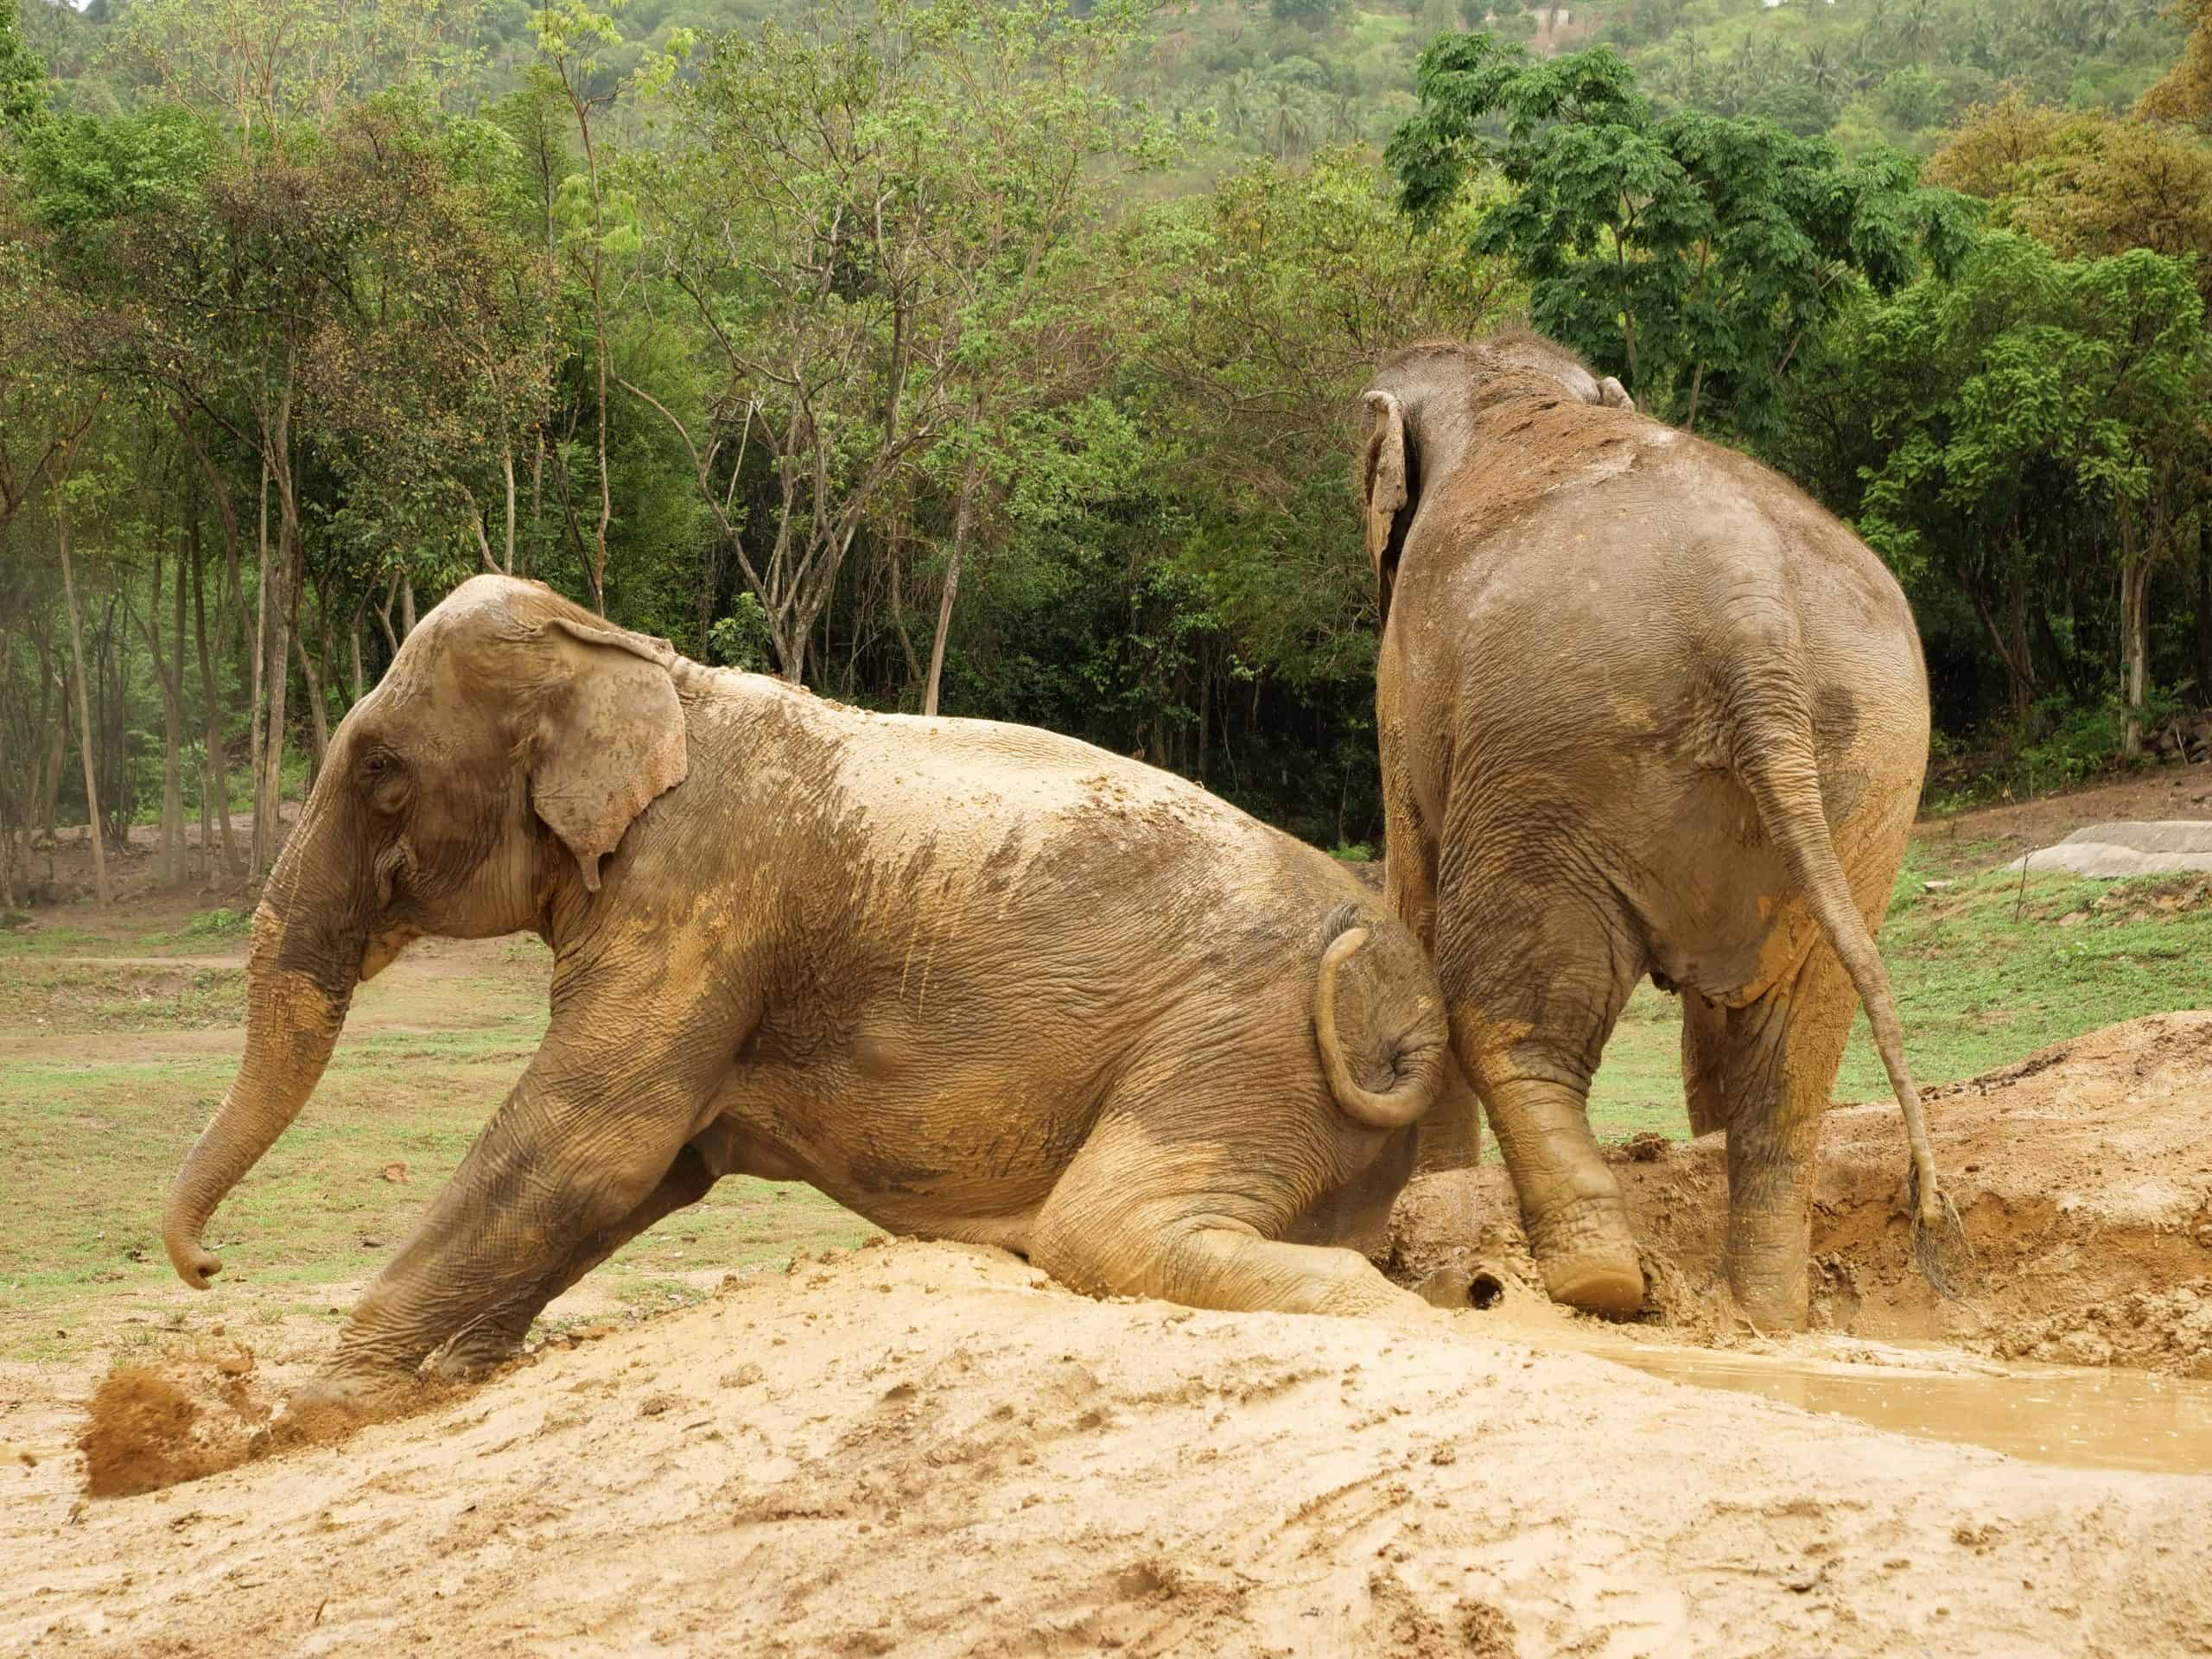 HAVEN HAS MORE WARRIORS AND COMMUNITY YOGA FOR KIDS AT SAMUI ELEPHANT HAVEN 2